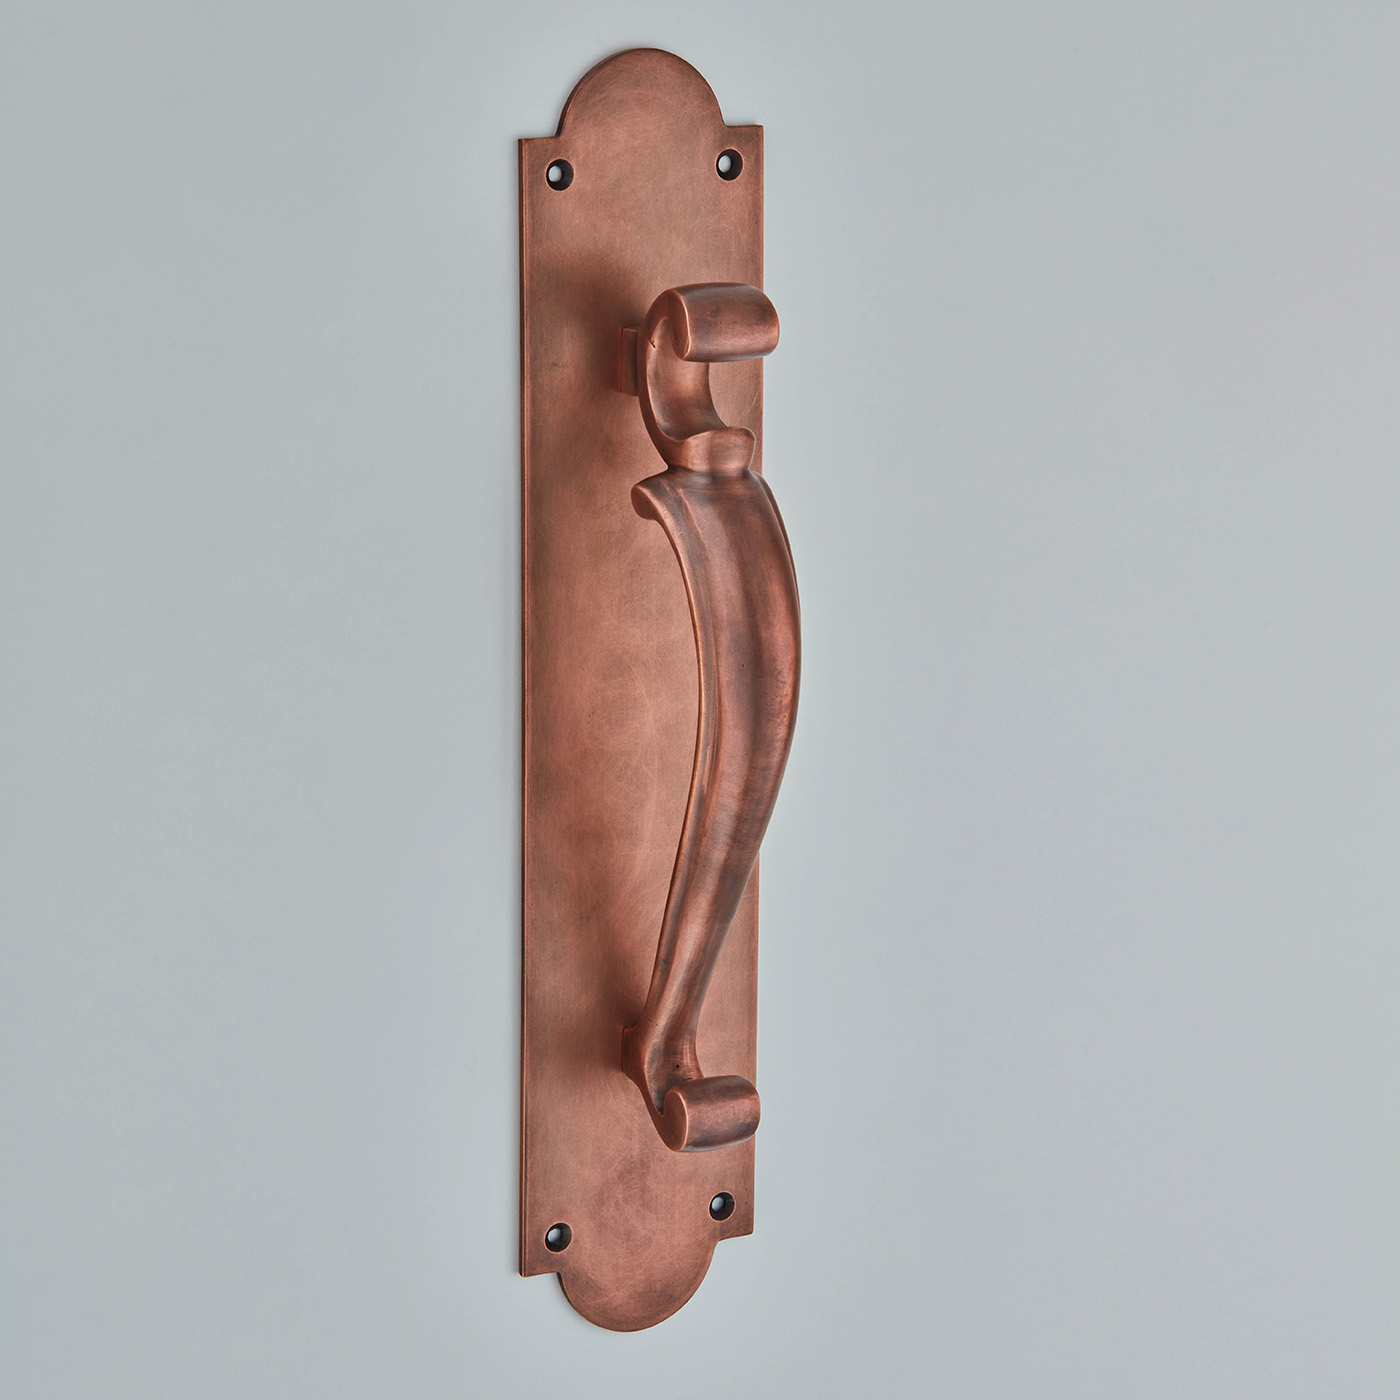 Doctor's Pull Handle On Plate